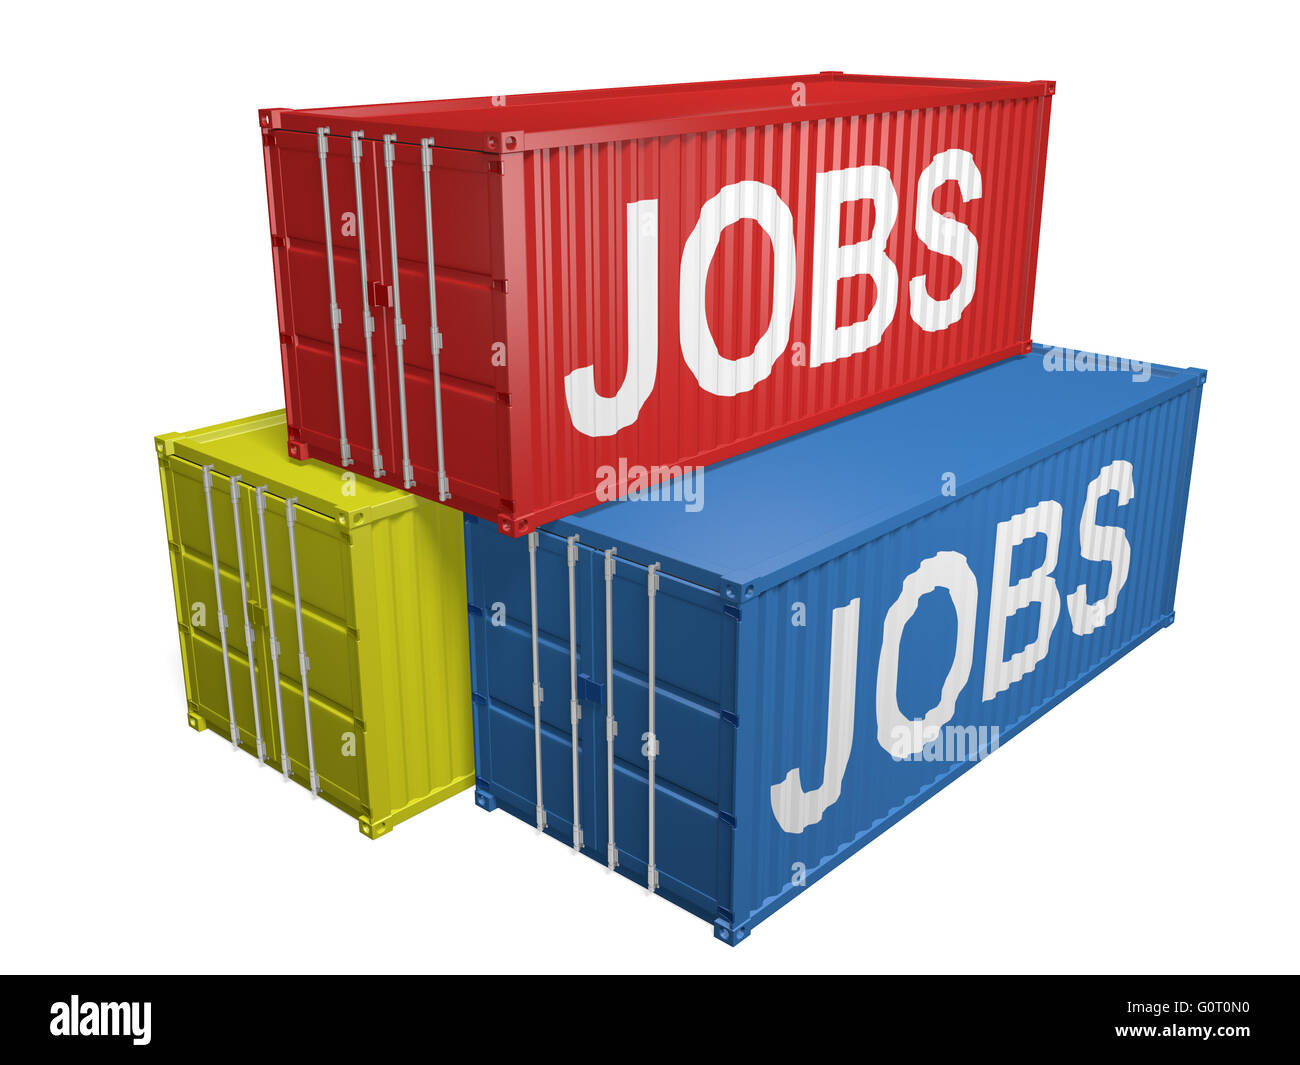 Shipping export containers labeled for job outsourcing, 3D rendering - Stock Image